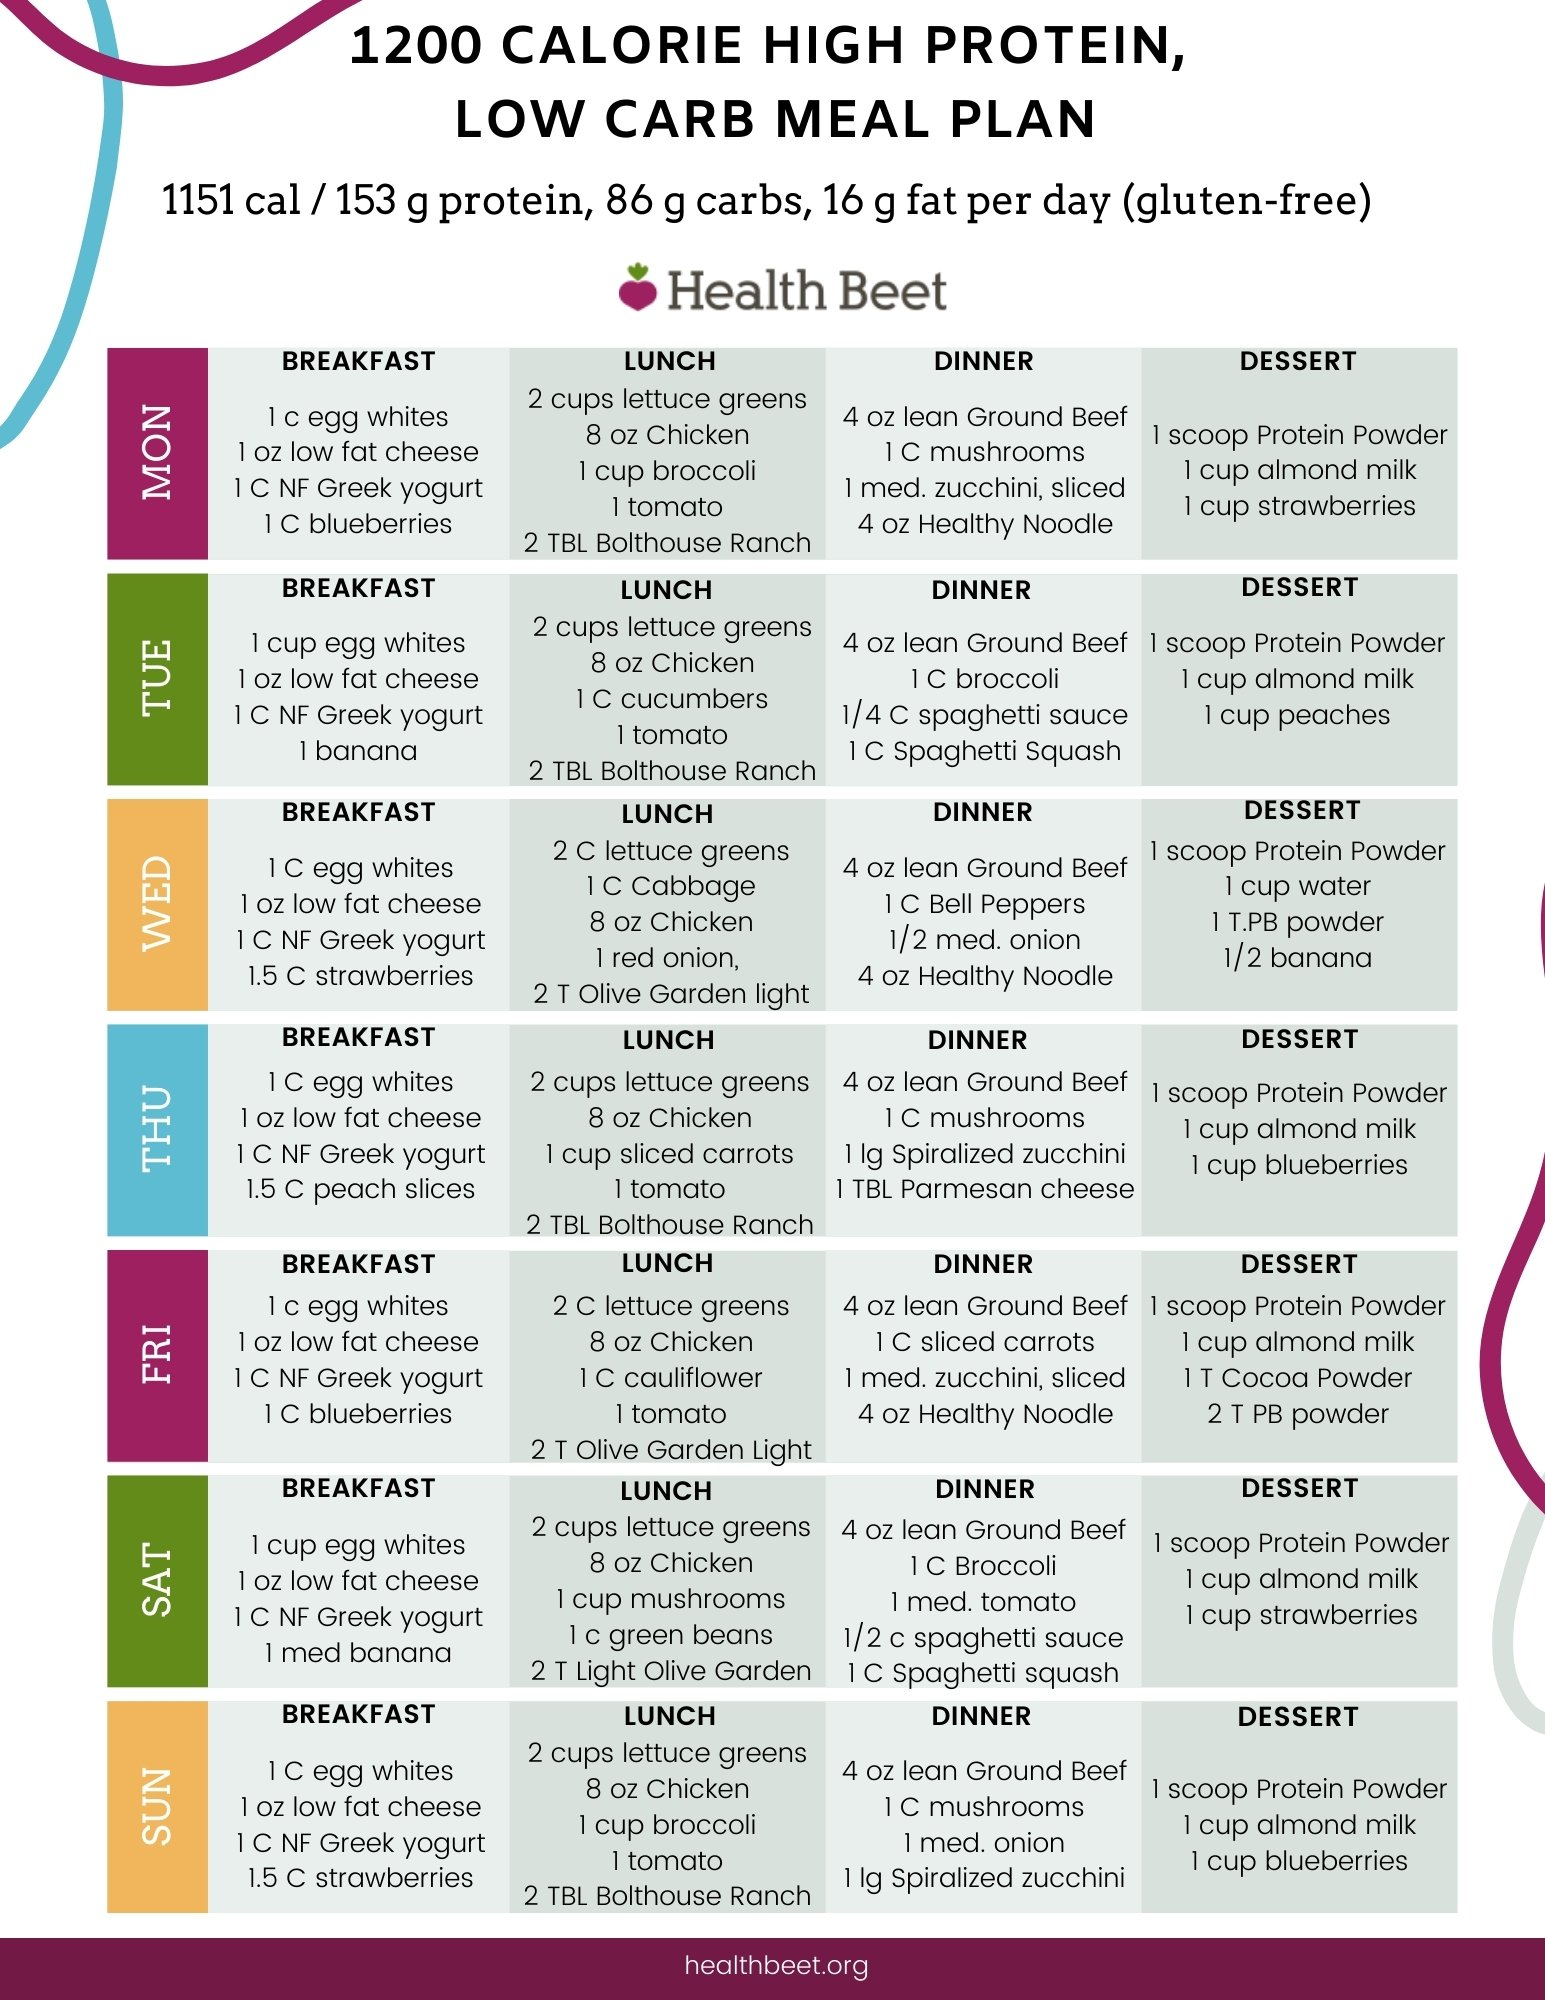 7 day 1200 calorie high protein low carb meal plan free printable from healthbeet